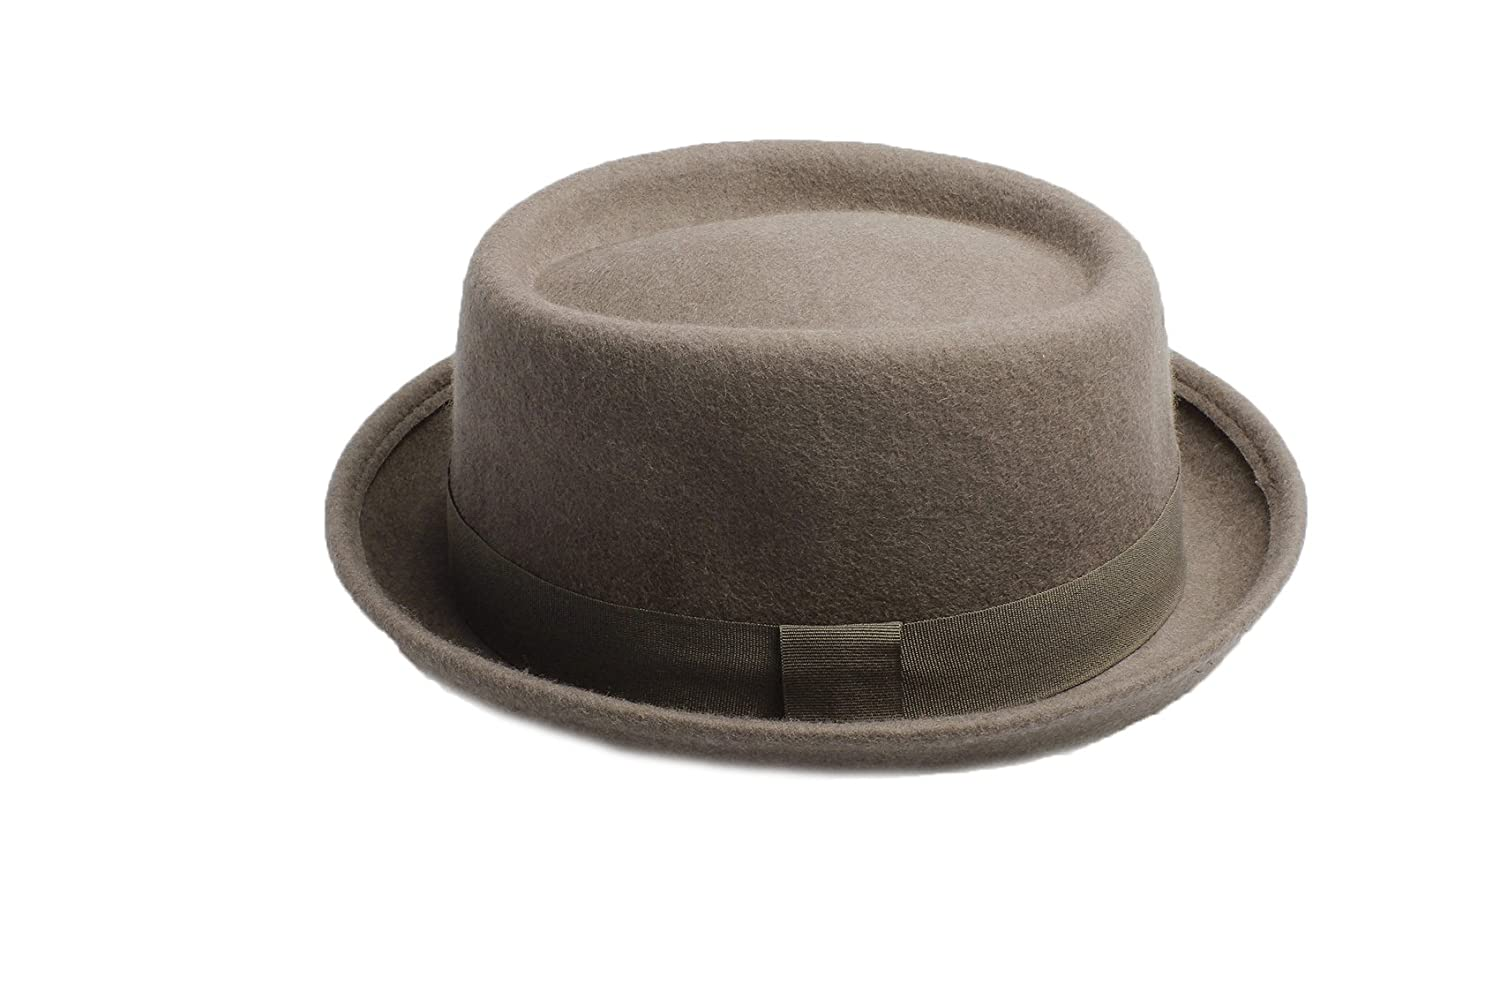 Unisex Grey Wool Pork Pie Hat Available in a Selection of Sizes